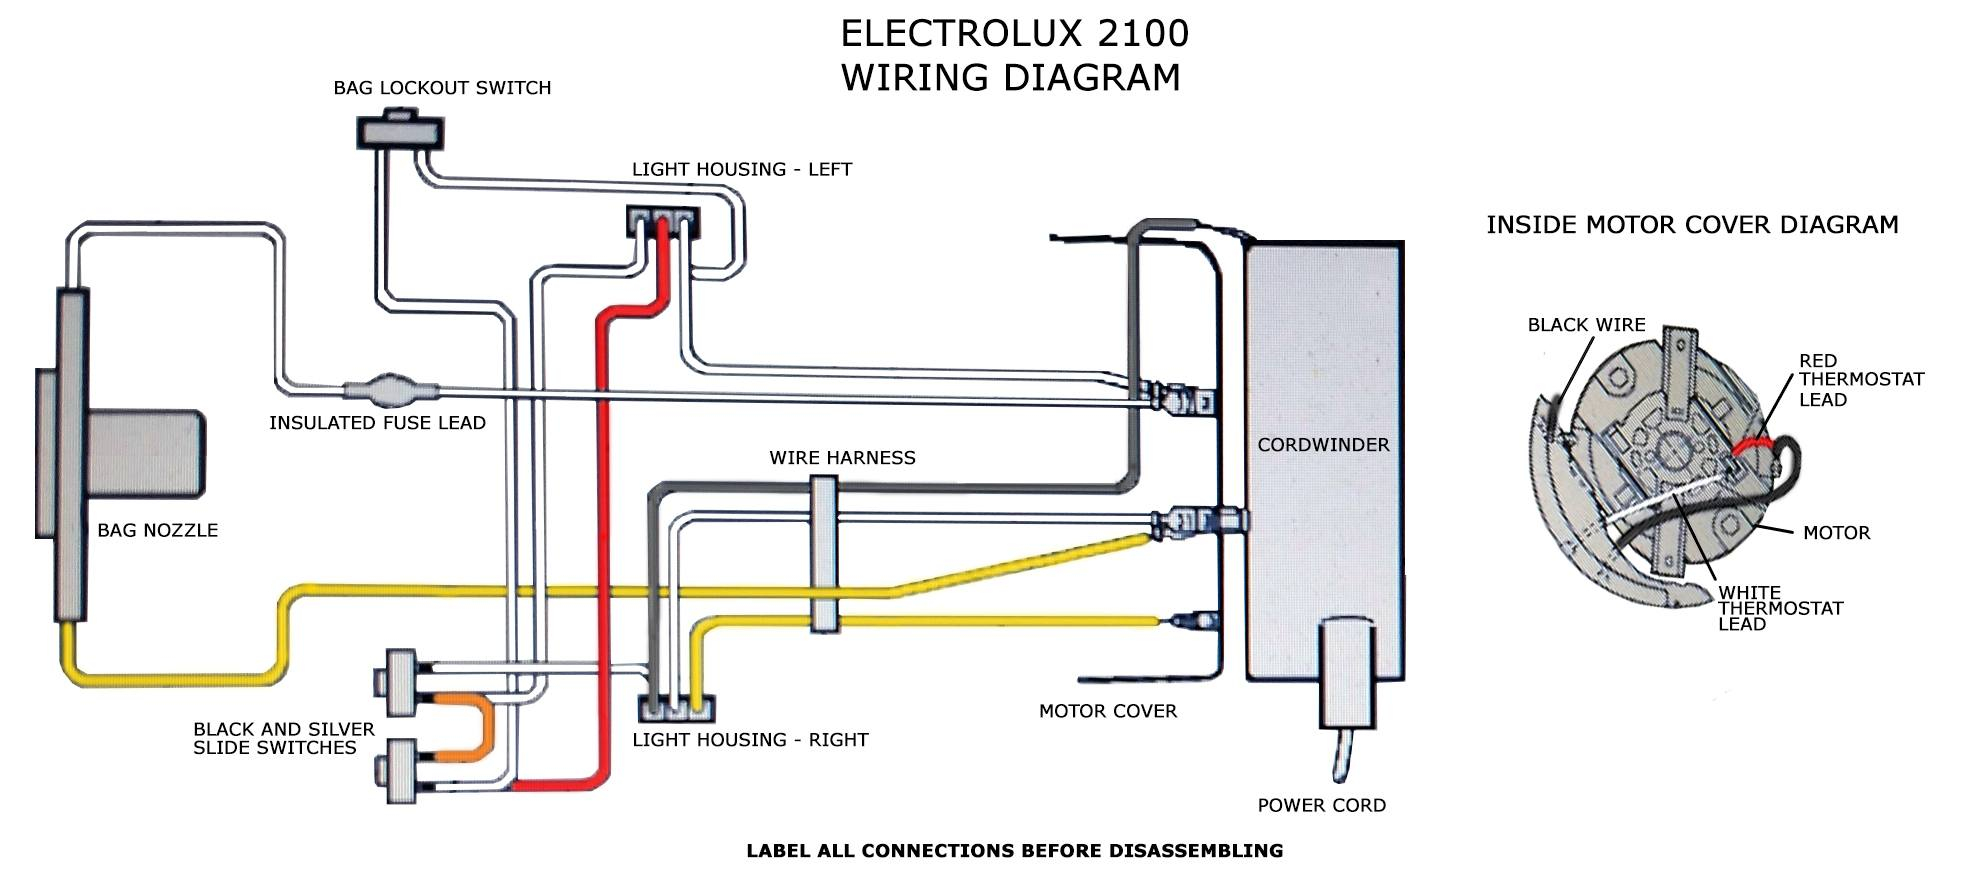 Electrolux Vacuum Wiring Diagram Download Sample Schematic Collection 2100 20wiring 20diagram In 14 S